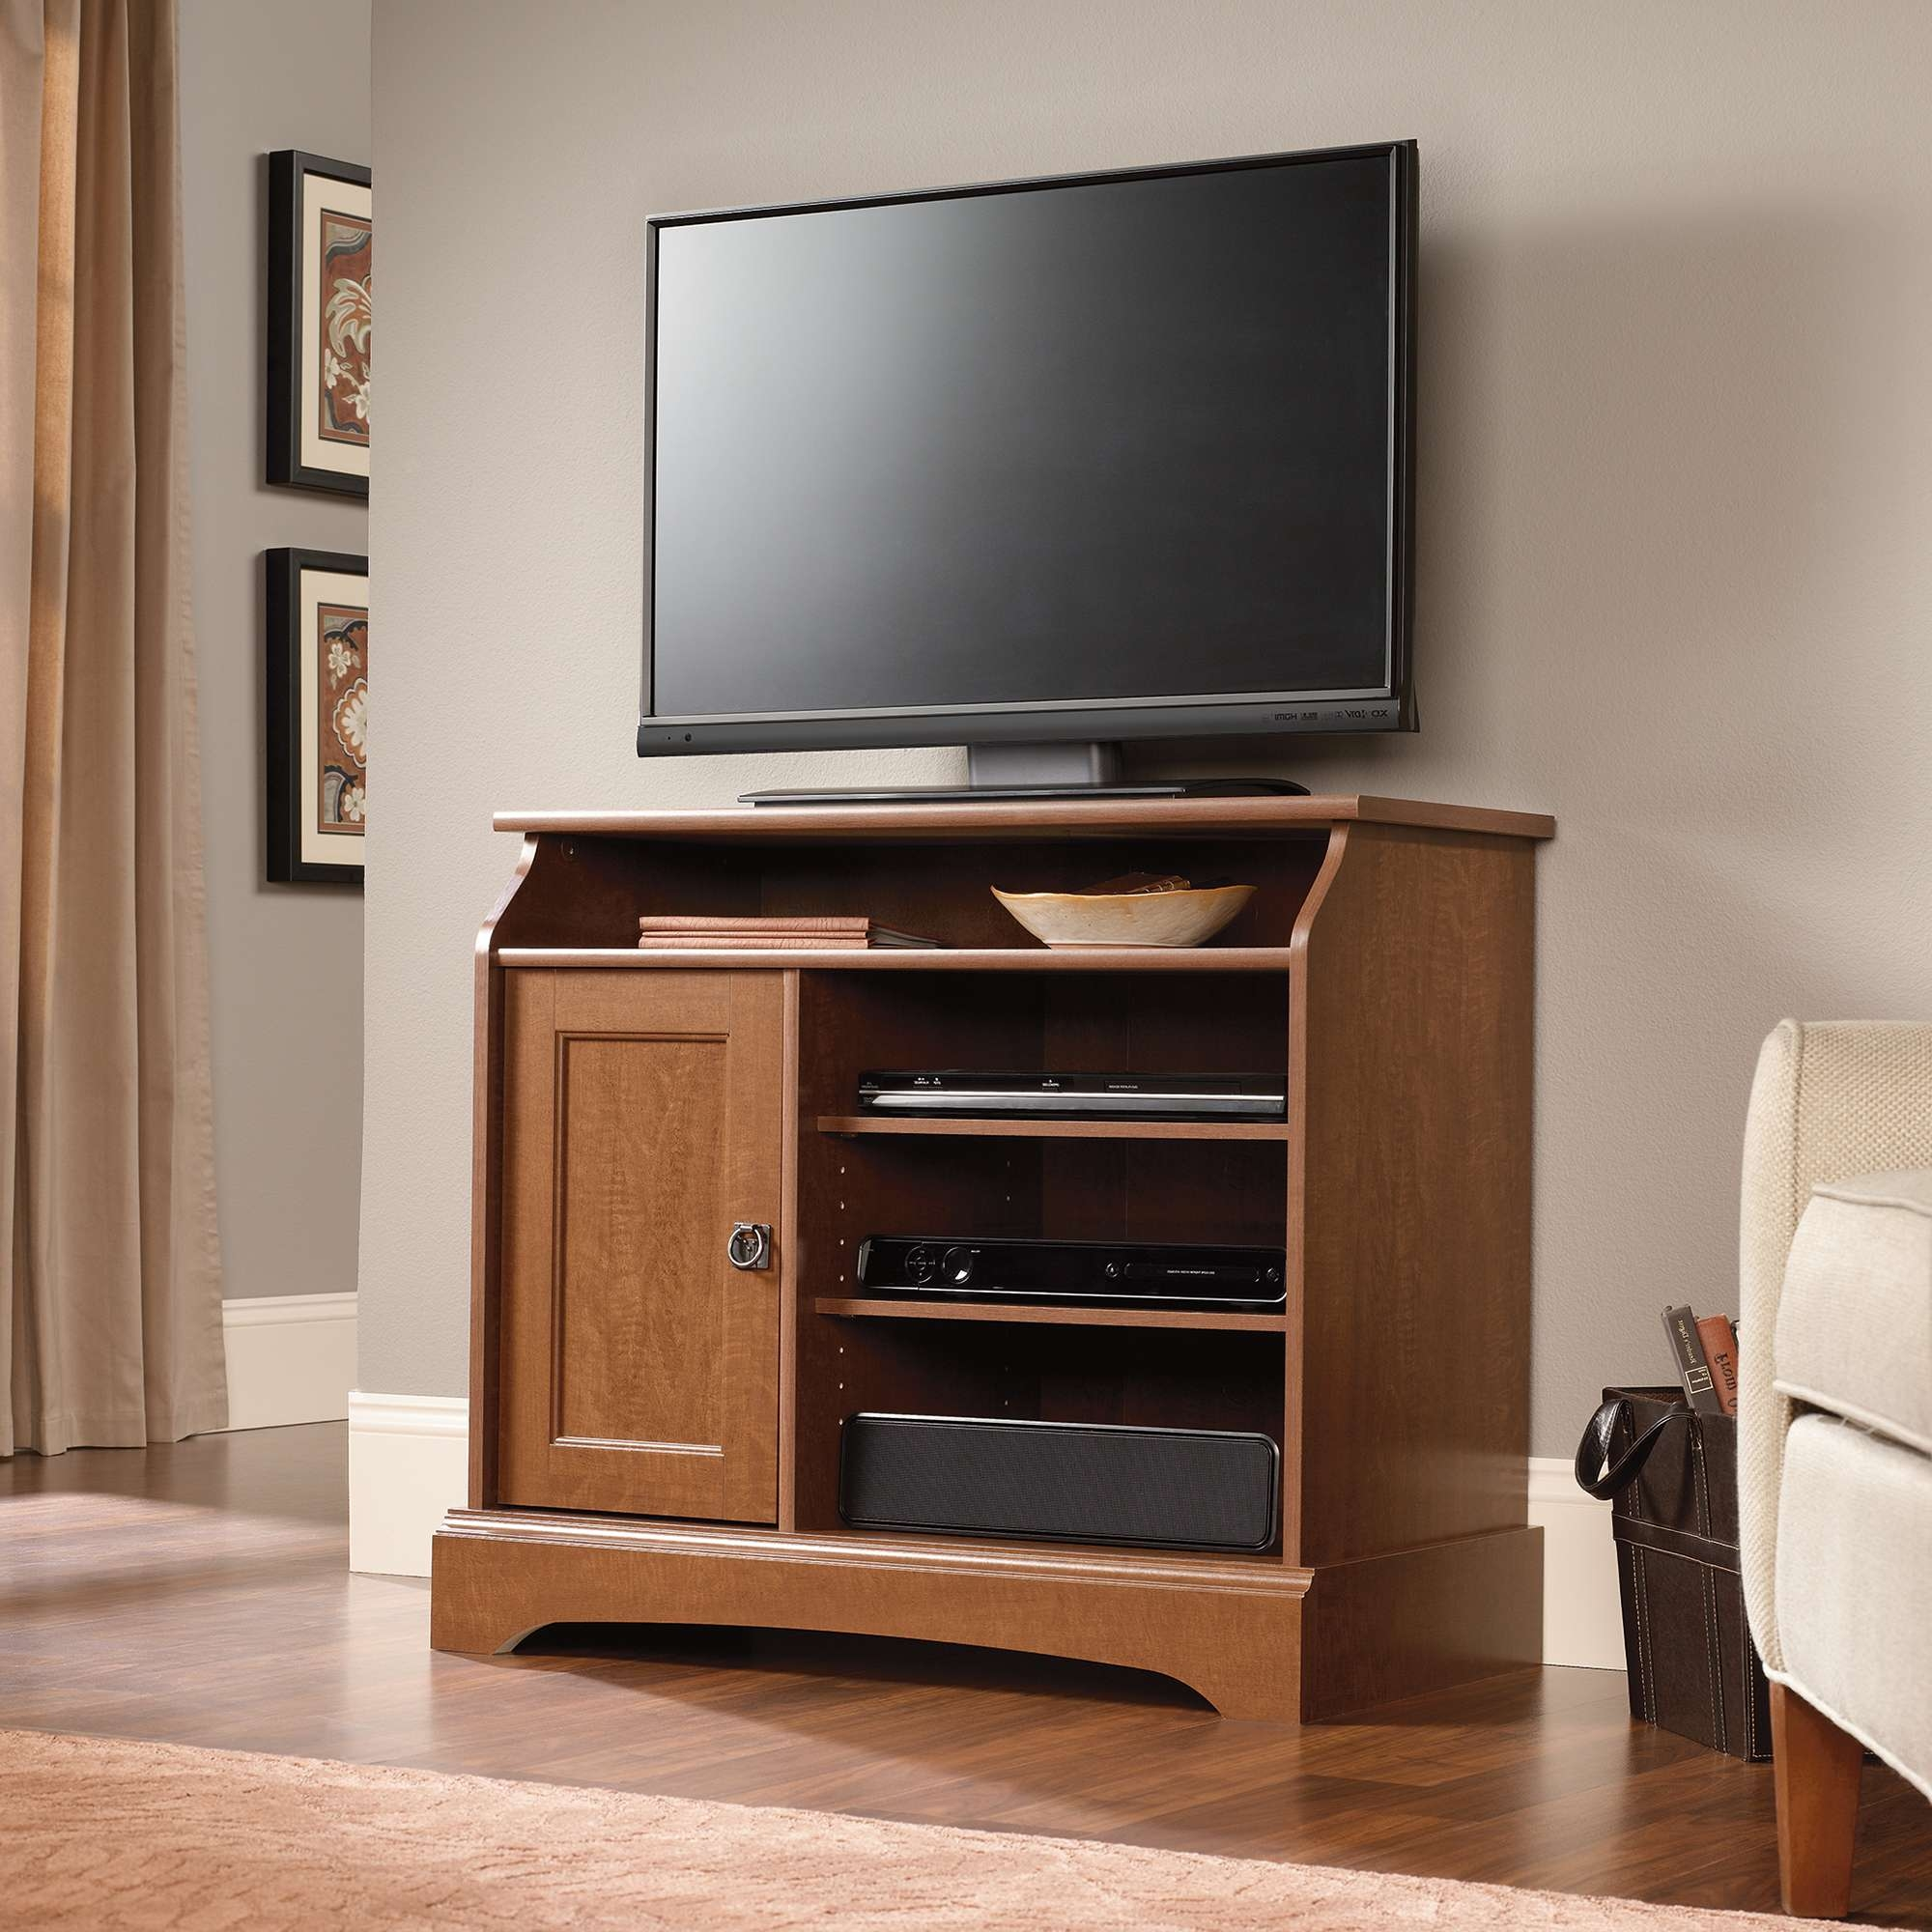 Sauder Select | Highboy Tv Stand | 408972 | Sauder Throughout Maple Wood Tv Stands (View 5 of 15)